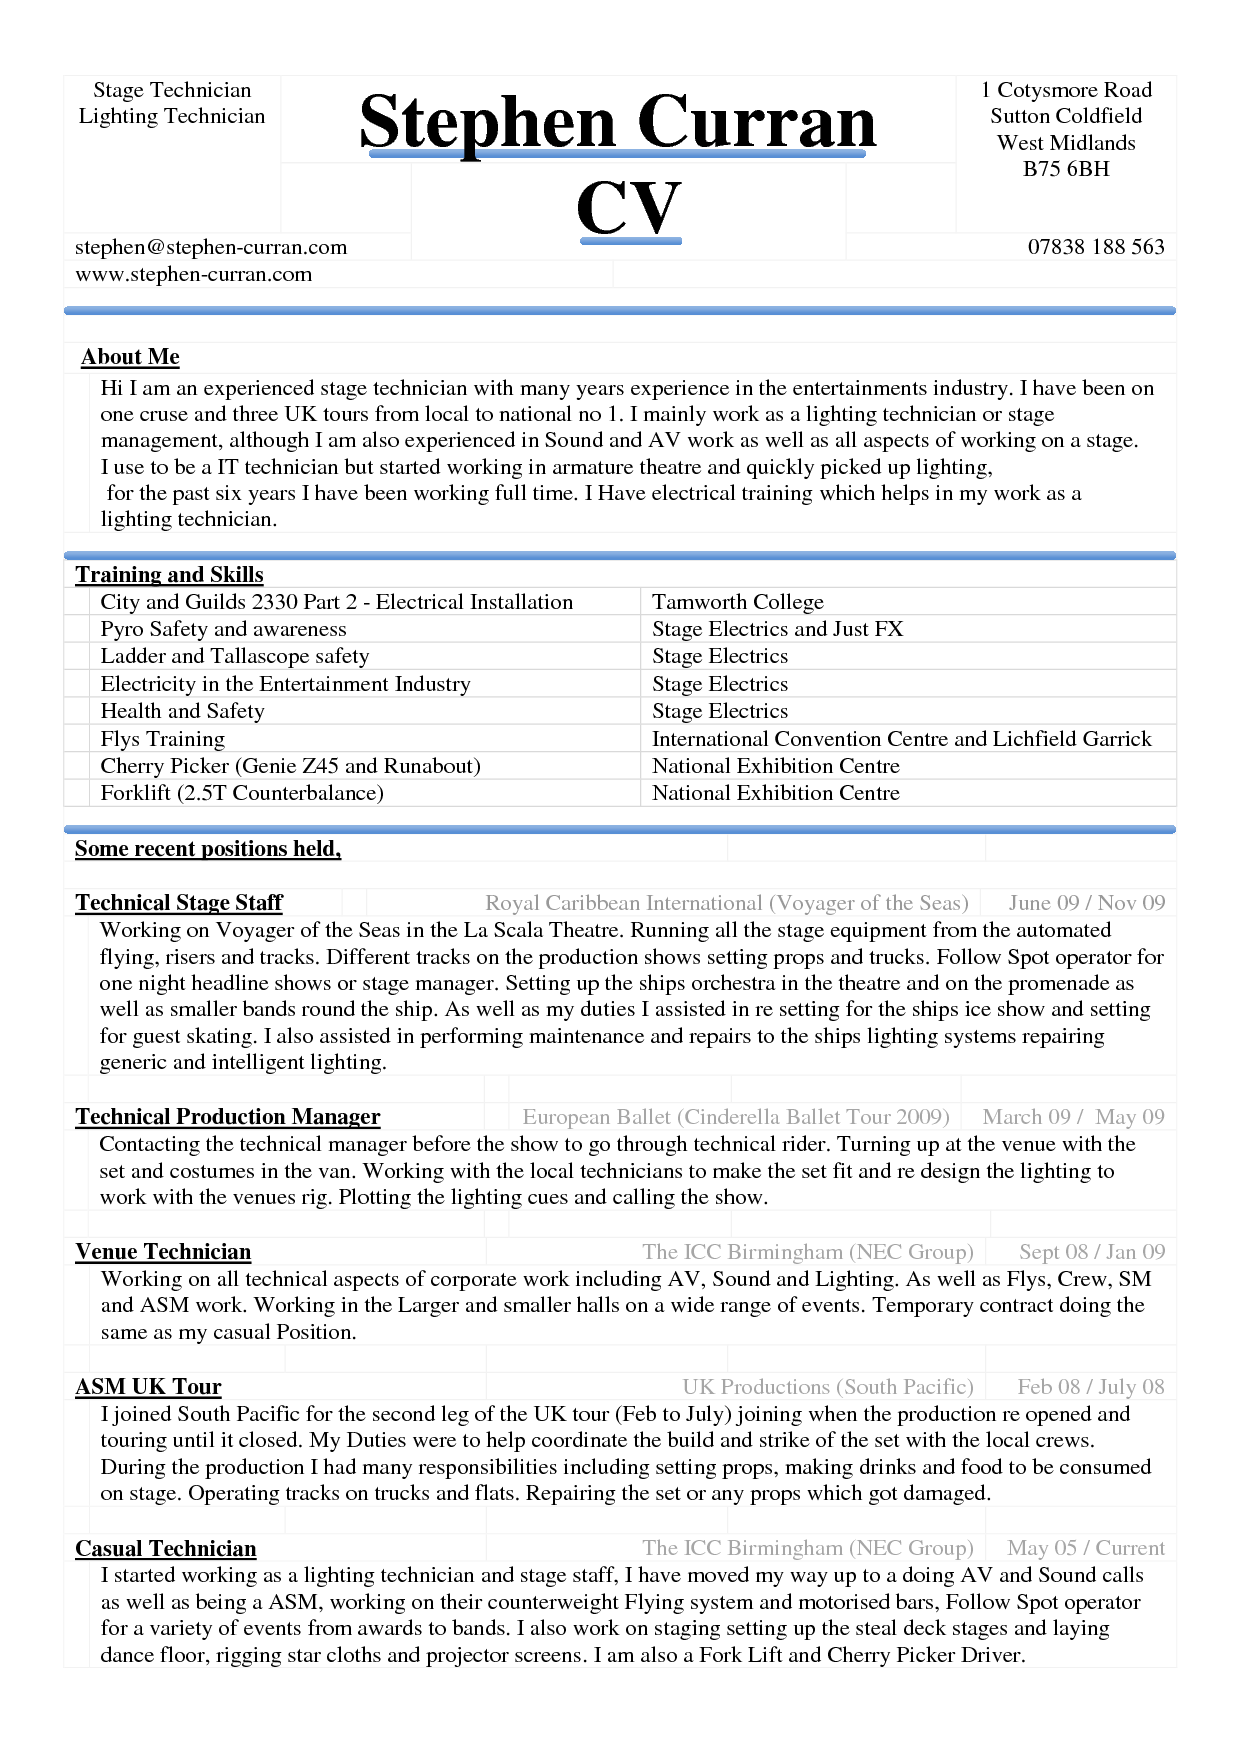 Professional Resume Word Template Free Download 4